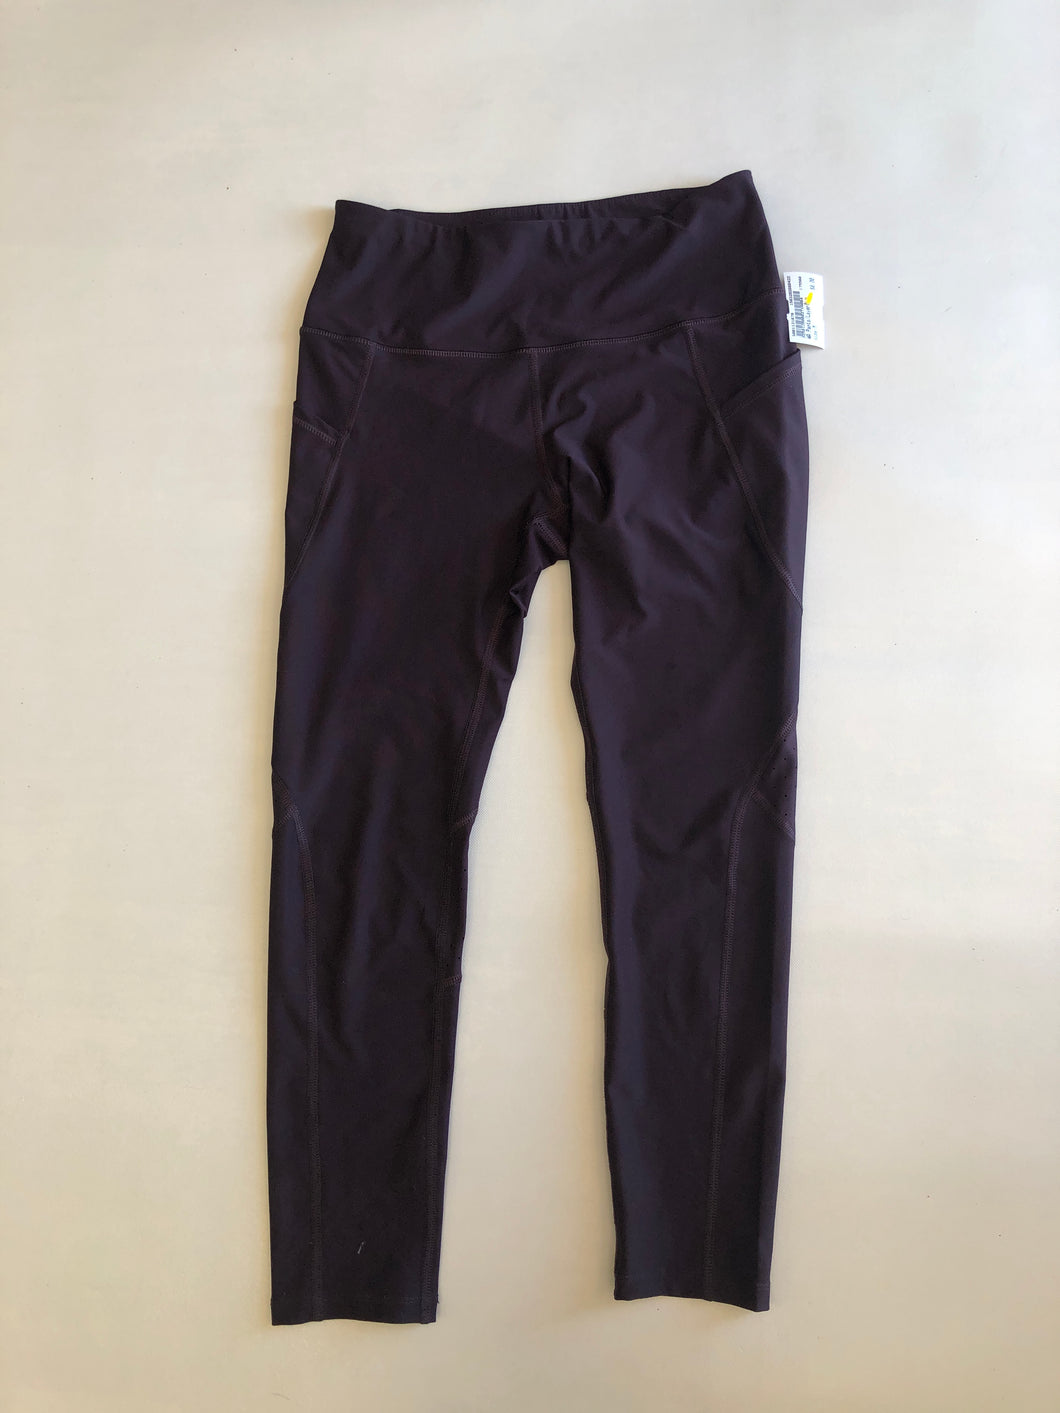 Womens Athletic Pants Size Medium